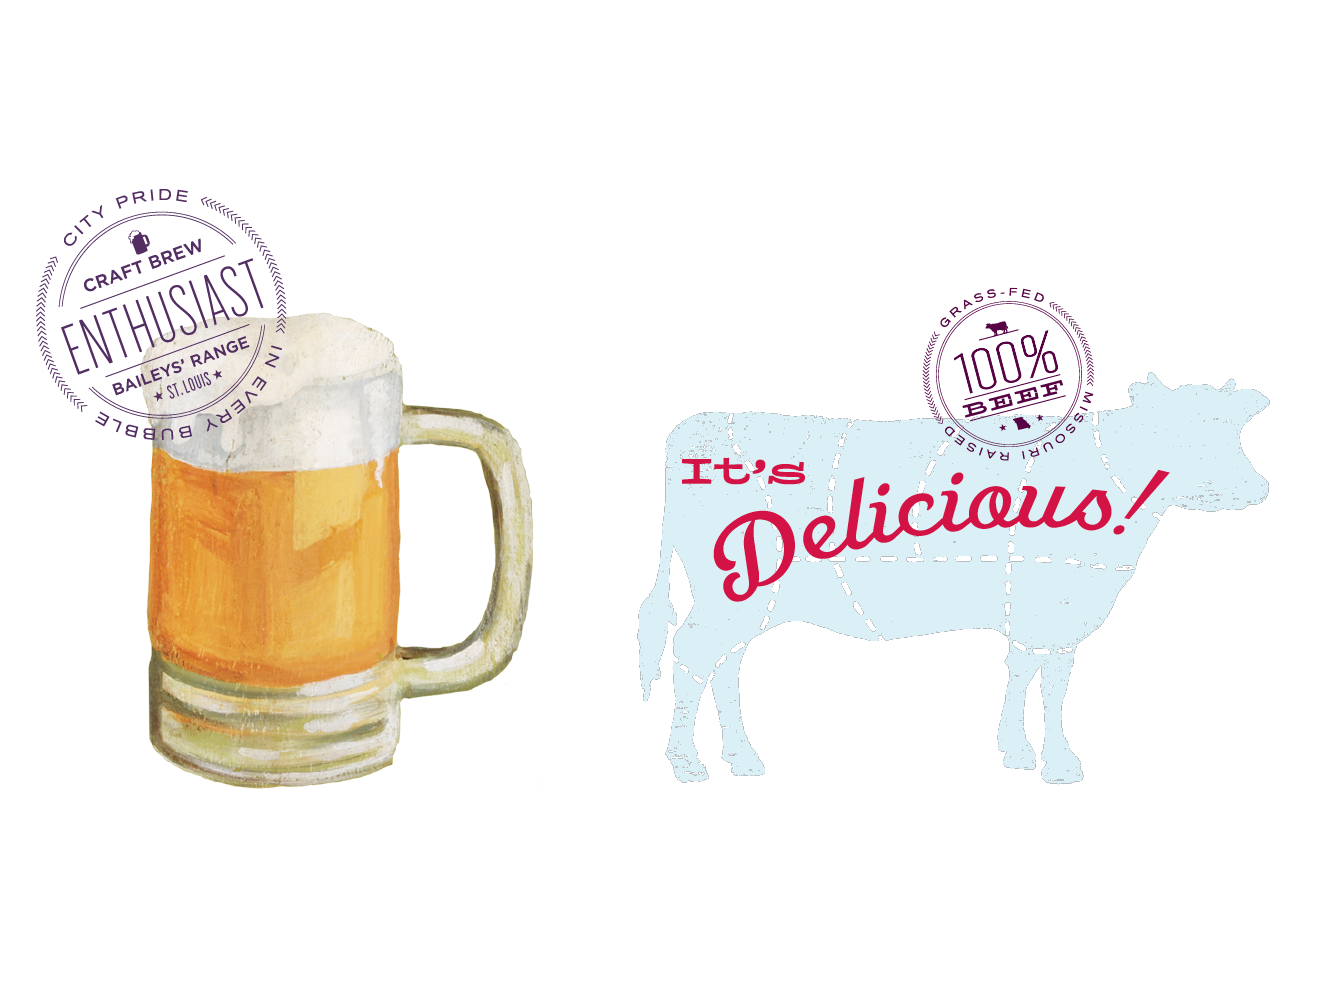 Bailey's Range Illustrations: Beer and Cow